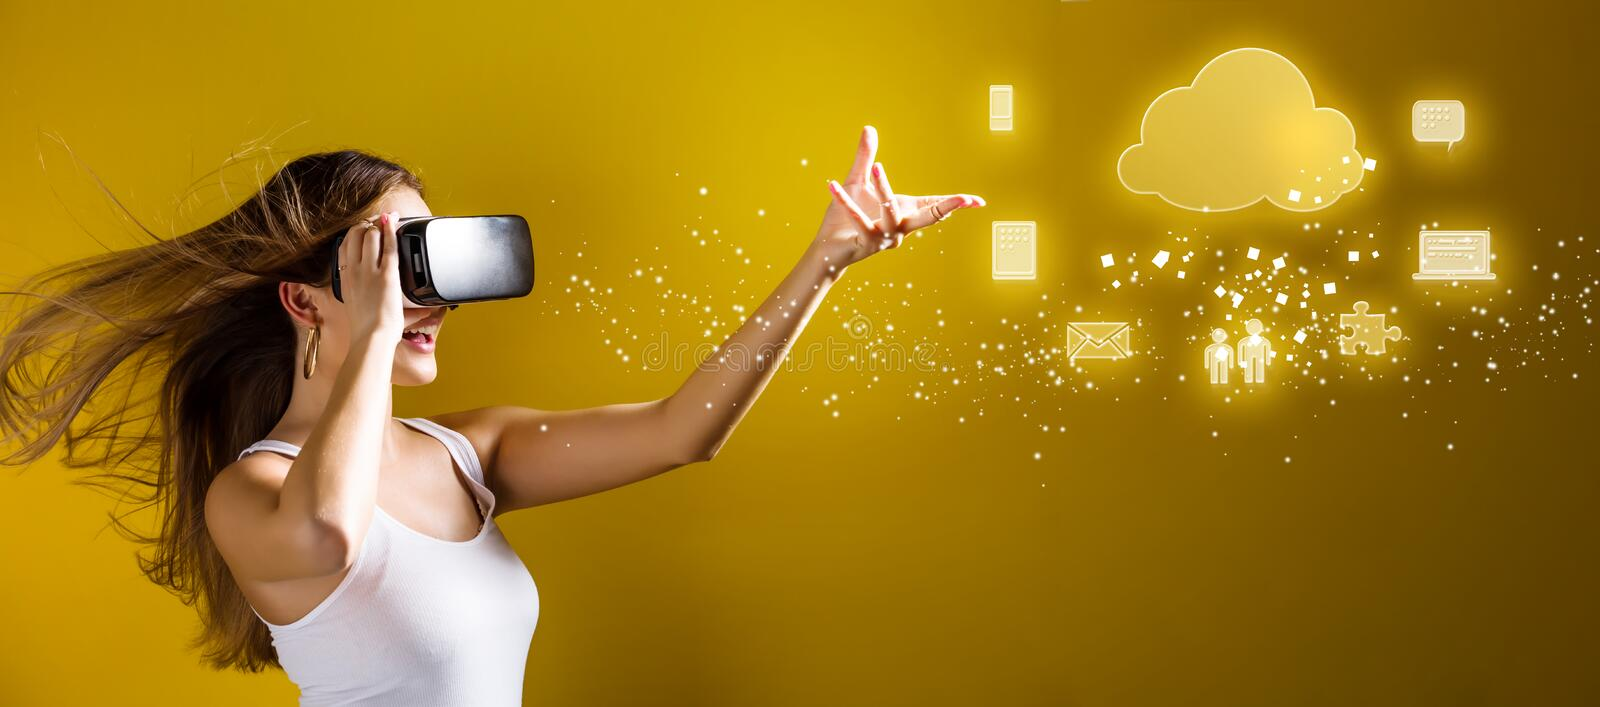 Cloud Computing with woman using a virtual reality headset stock photography